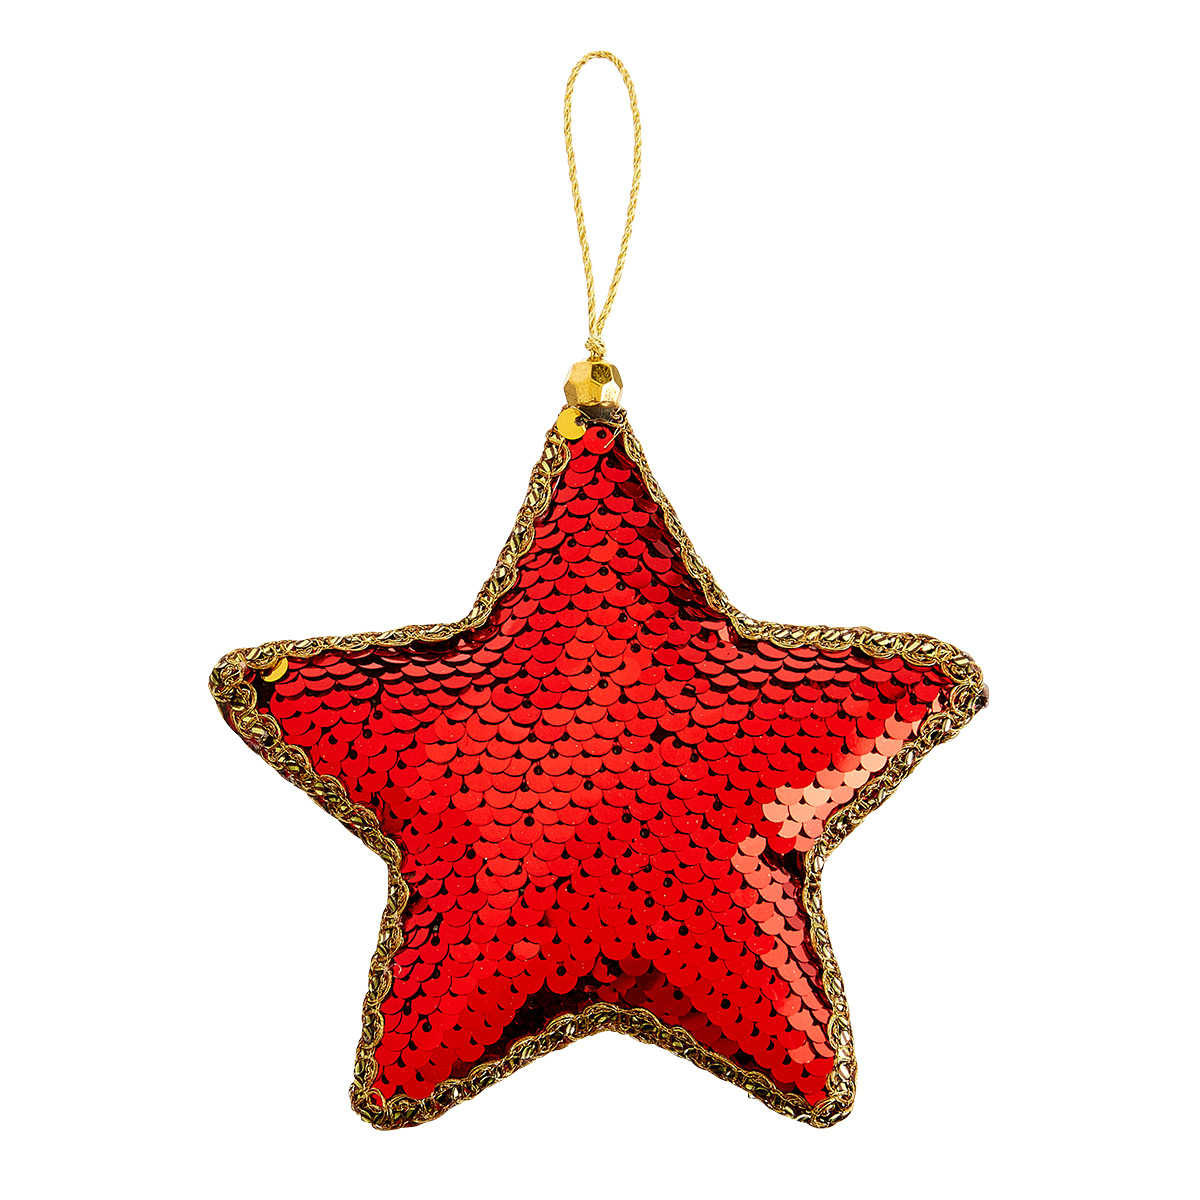 Bling Star Tie-On Ornament